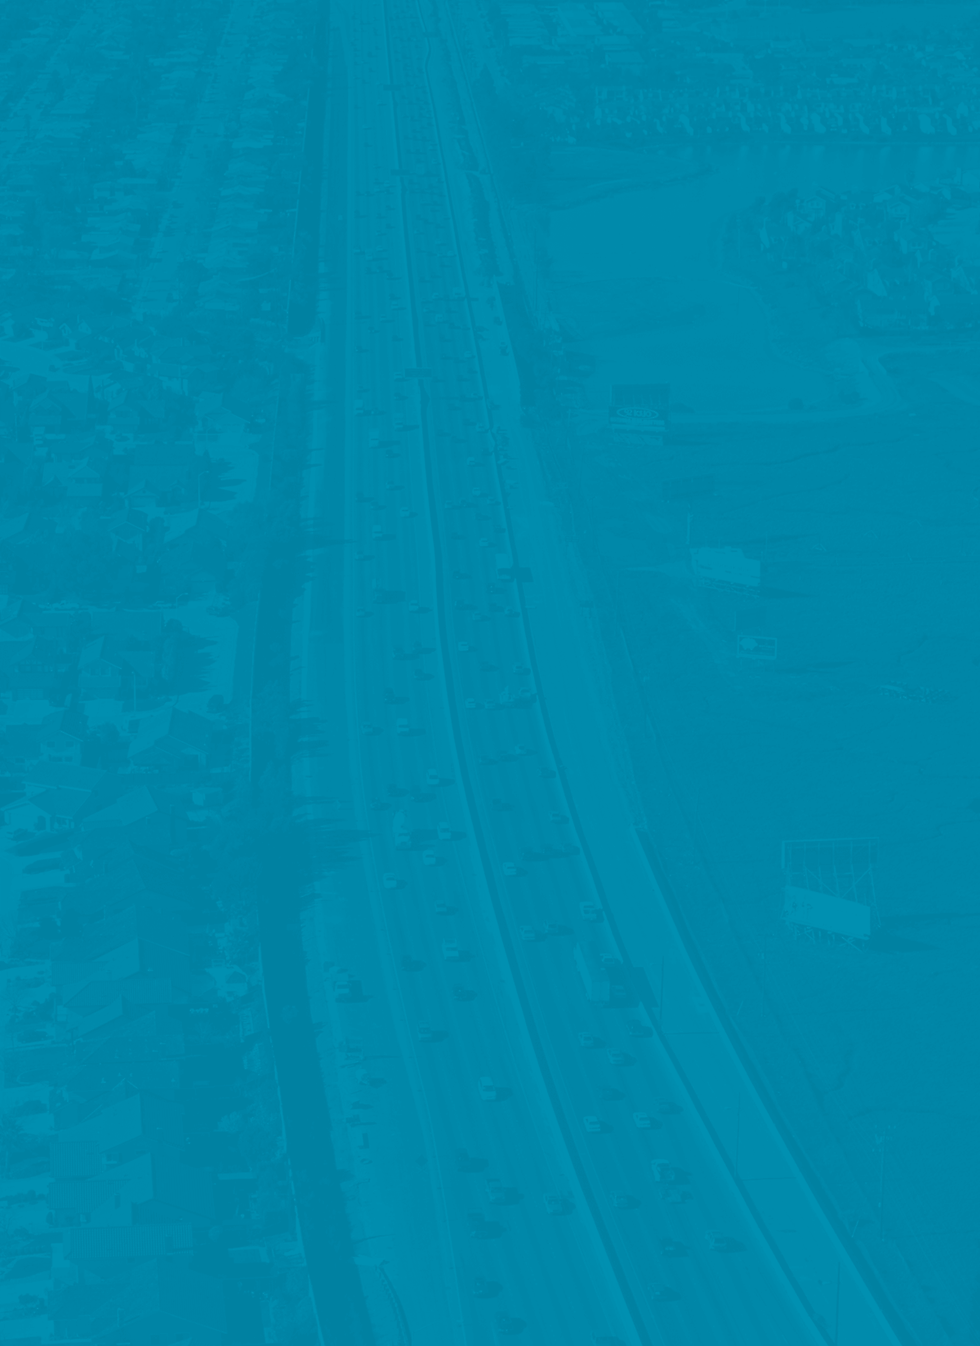 Landing_Page_Background-Teal2.png